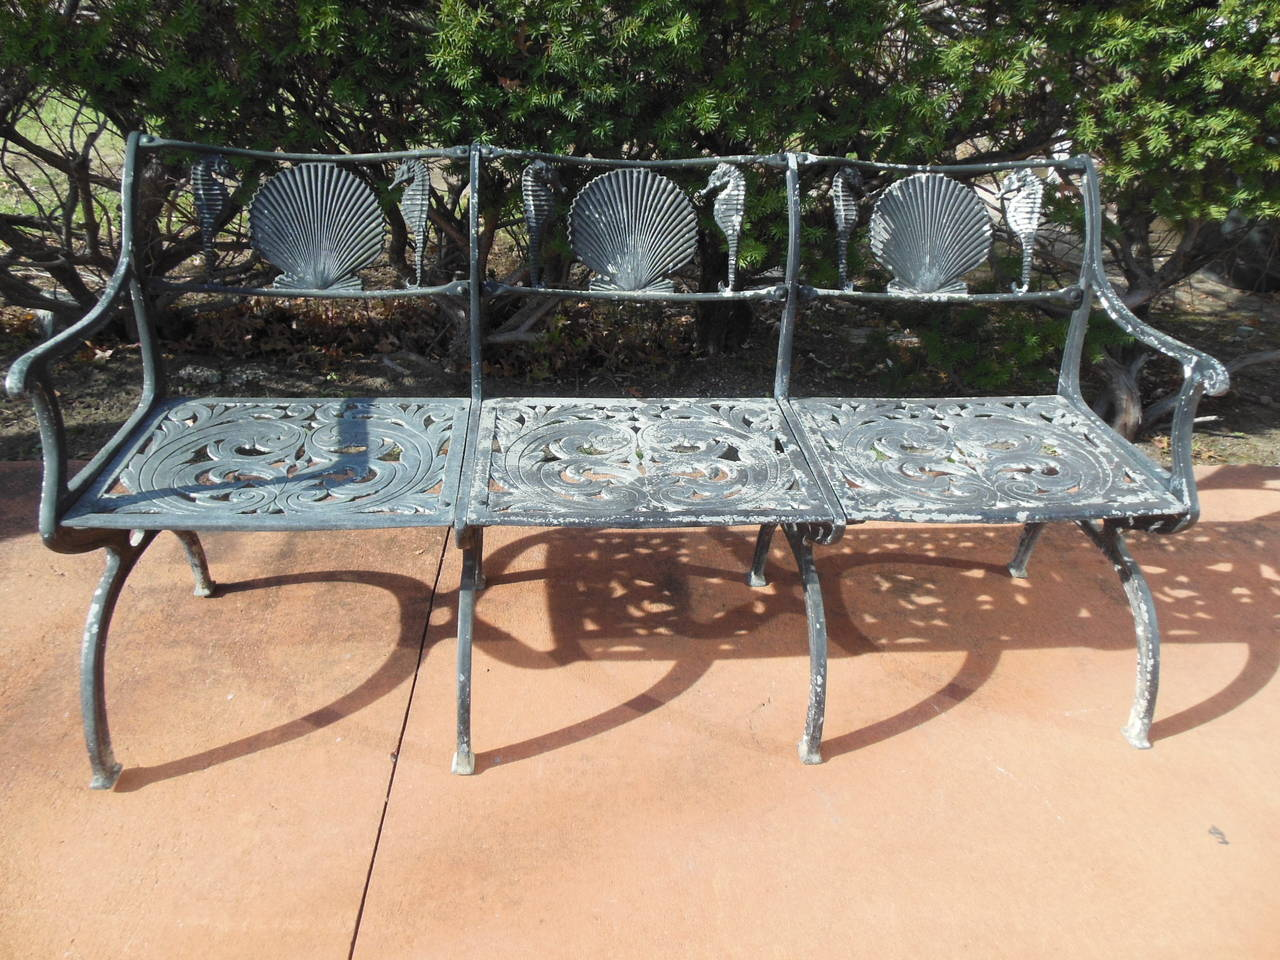 Patio Set By Molla For The Garden Or Sea Shore With Shells